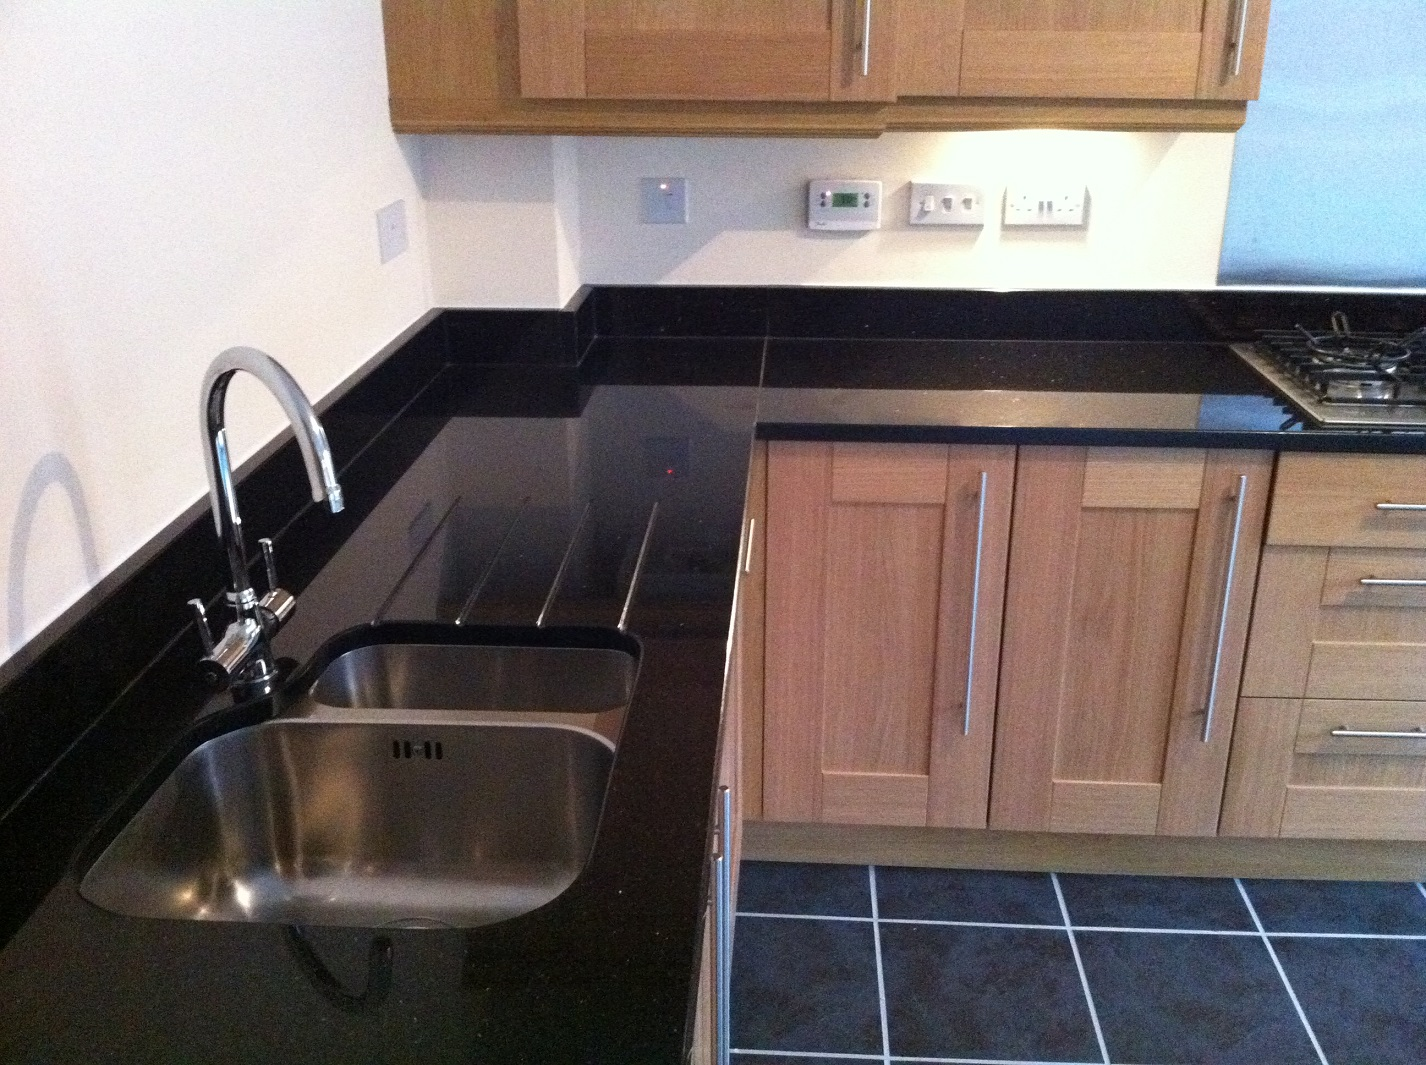 We supply Granite and Quartz Worktops in the penrith Area. We supply Granite and Quartz Worktops in the Carlisle Area. We supply Granite and Quartz Worktops in the Kendal Area. We supply Granite and Quartz Worktops in the Keswick Area. We supply Granite and Quartz Worktops in the Windermere Area. We supply Granite and Quartz Worktops in the Ambleside Area. We supply Granite and Quartz Worktops in the Cockermouth Area. We supply Granite and Quartz Worktops in the Barrow-in-Furness Area. We supply Granite and Quartz Worktops in the Whitehaven Area. We supply Granite and Quartz Worktops in the Mayport Area. We supply Granite and Quartz Worktops in the Ulverston Area. We supply Granite and Quartz Worktops in the Kirkby-Stephen Area. We supply Granite and Quartz Worktops in the Workington Area. We supply Granite and Quartz Worktops in the Hawes Area. We supply Granite and Quartz Worktops in the Sedbergh Area. We supply Granite and Quartz Worktops in the Ingleton Area. We supply Granite and Quartz Worktops in the Milnthorpe Area. We supply Granite and Quartz Worktops in the Burton-in-Kendal Area. We supply Granite and Quartz Worktops in the Seascale Area. We supply Granite and Quartz Worktops in the Gosforth Area. We supply Granite and Quartz Worktops in the Wigton Area.